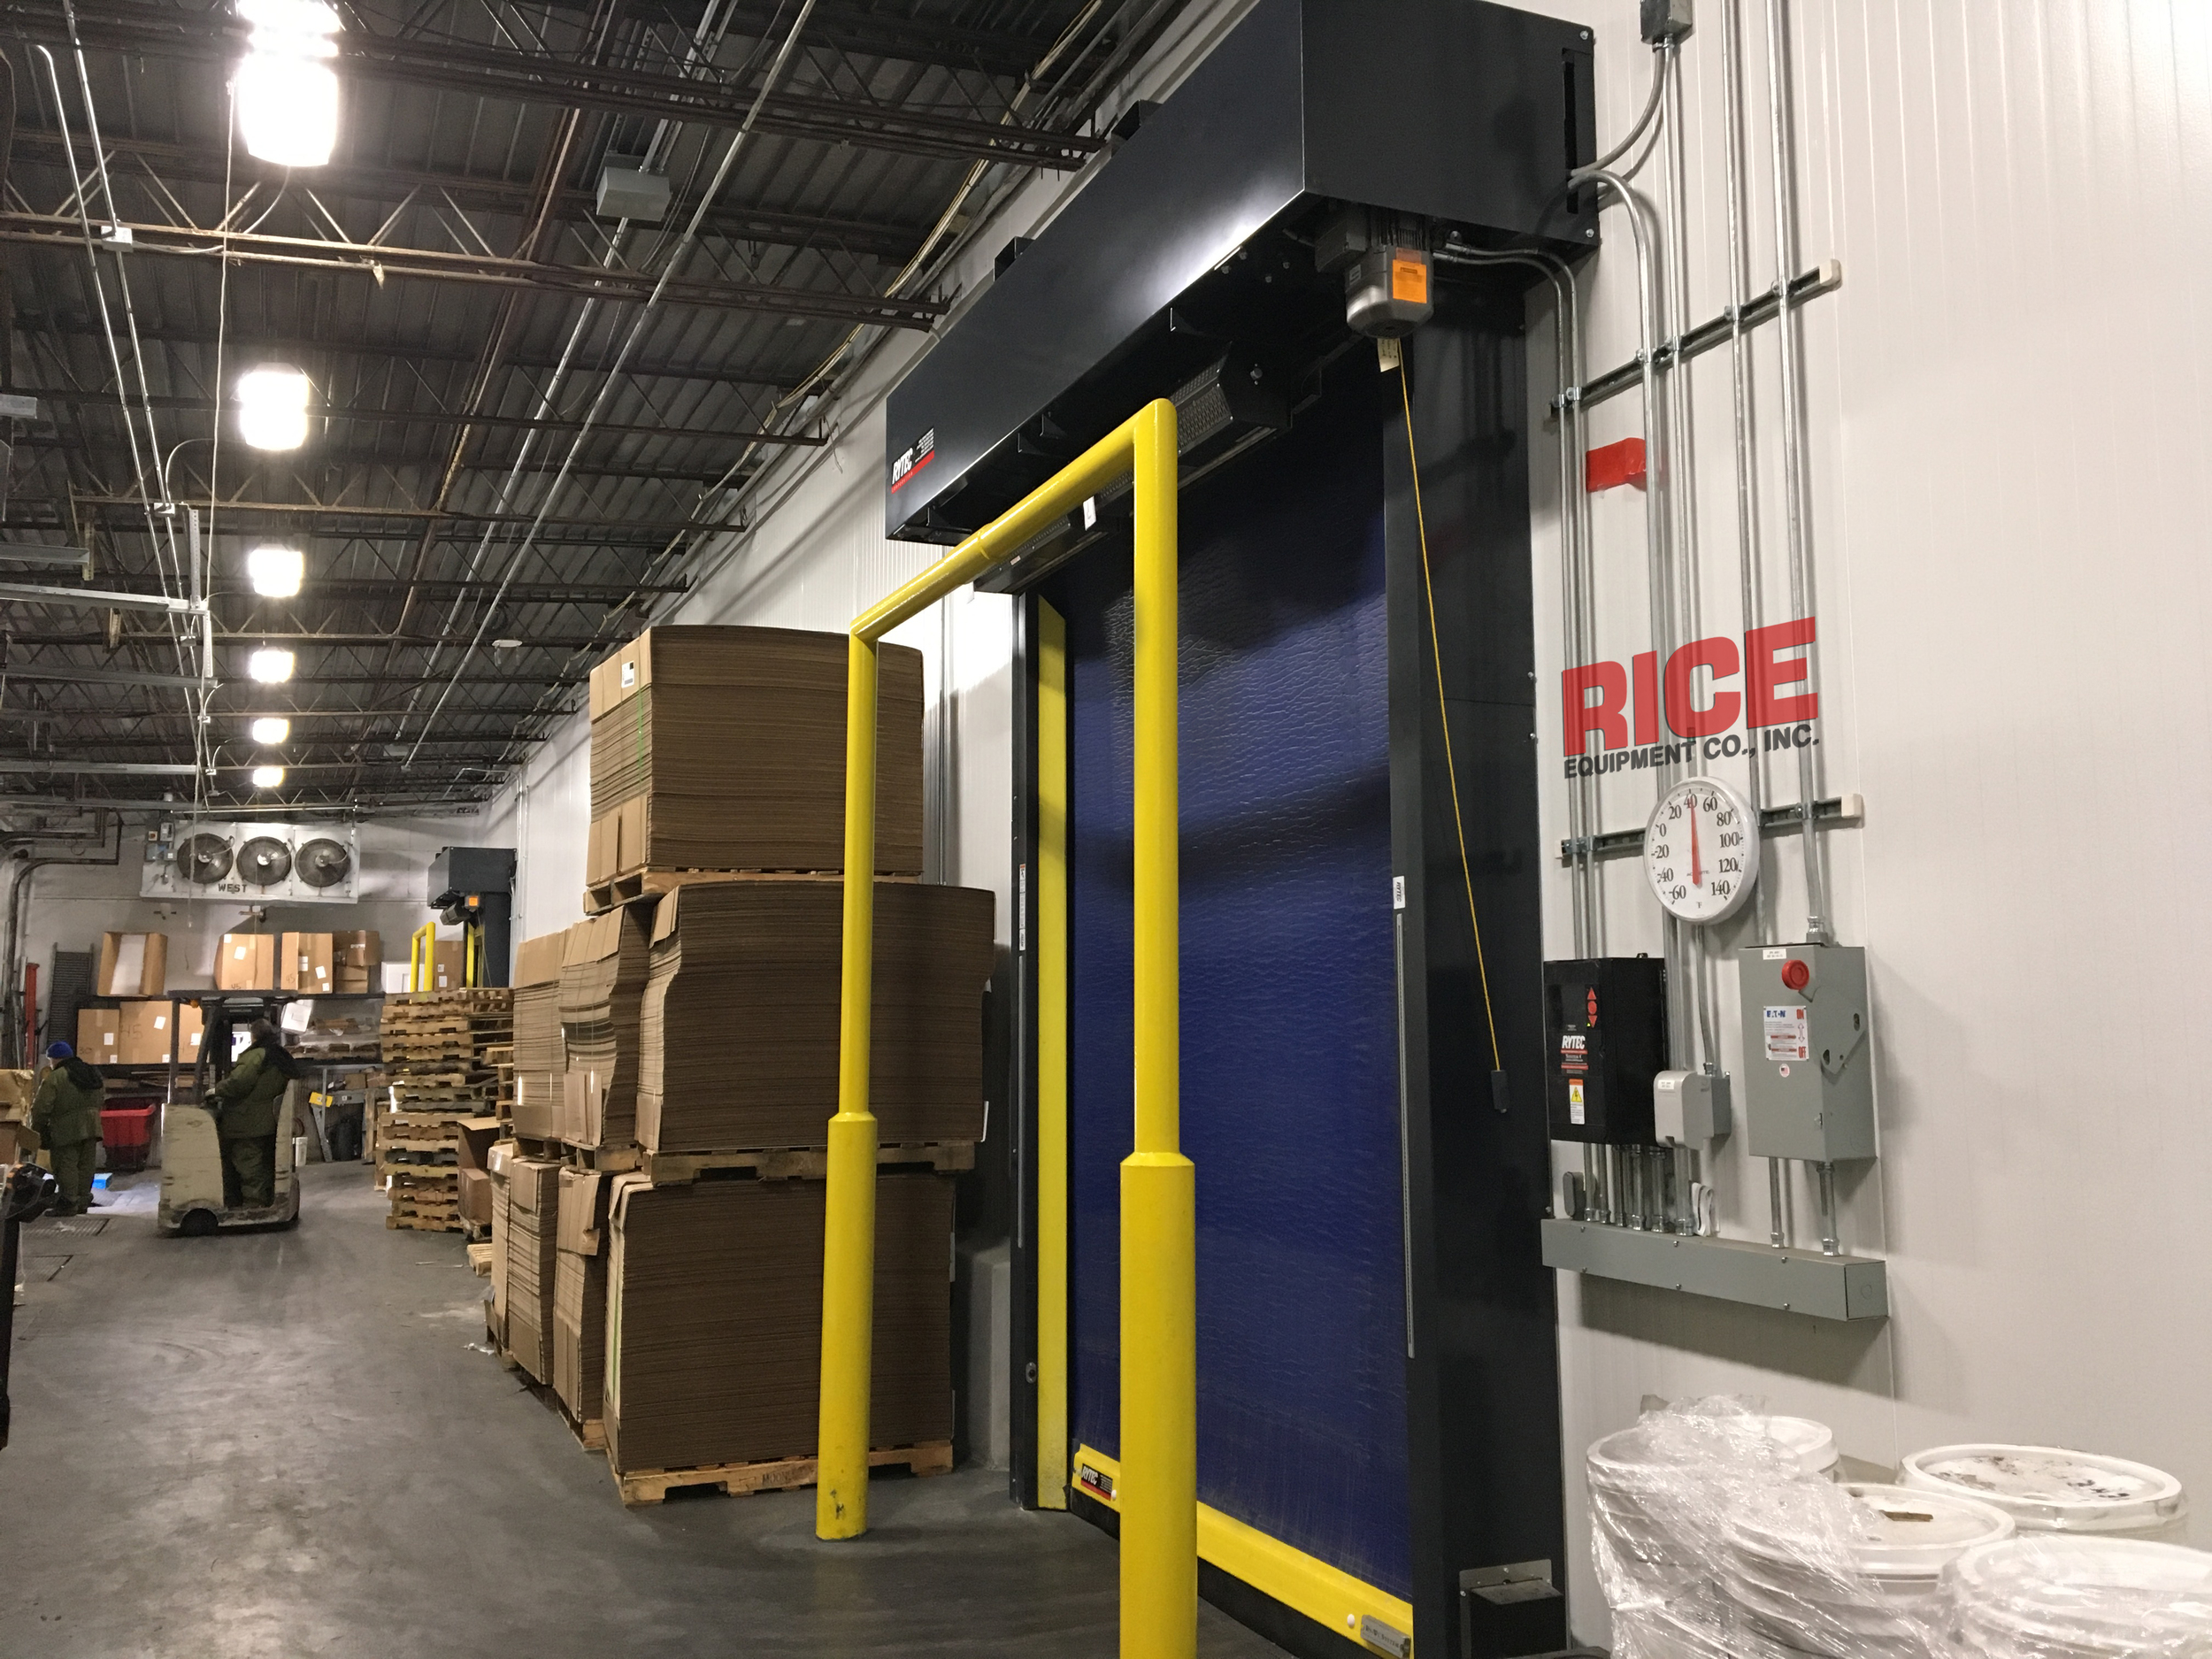 We handle high-speed doors of all types: Coiling, Sliding, Impactable, Freezer, Cold Storage, Pharmaceutical, Food, Industrial, Warehouse, Manufacturing.